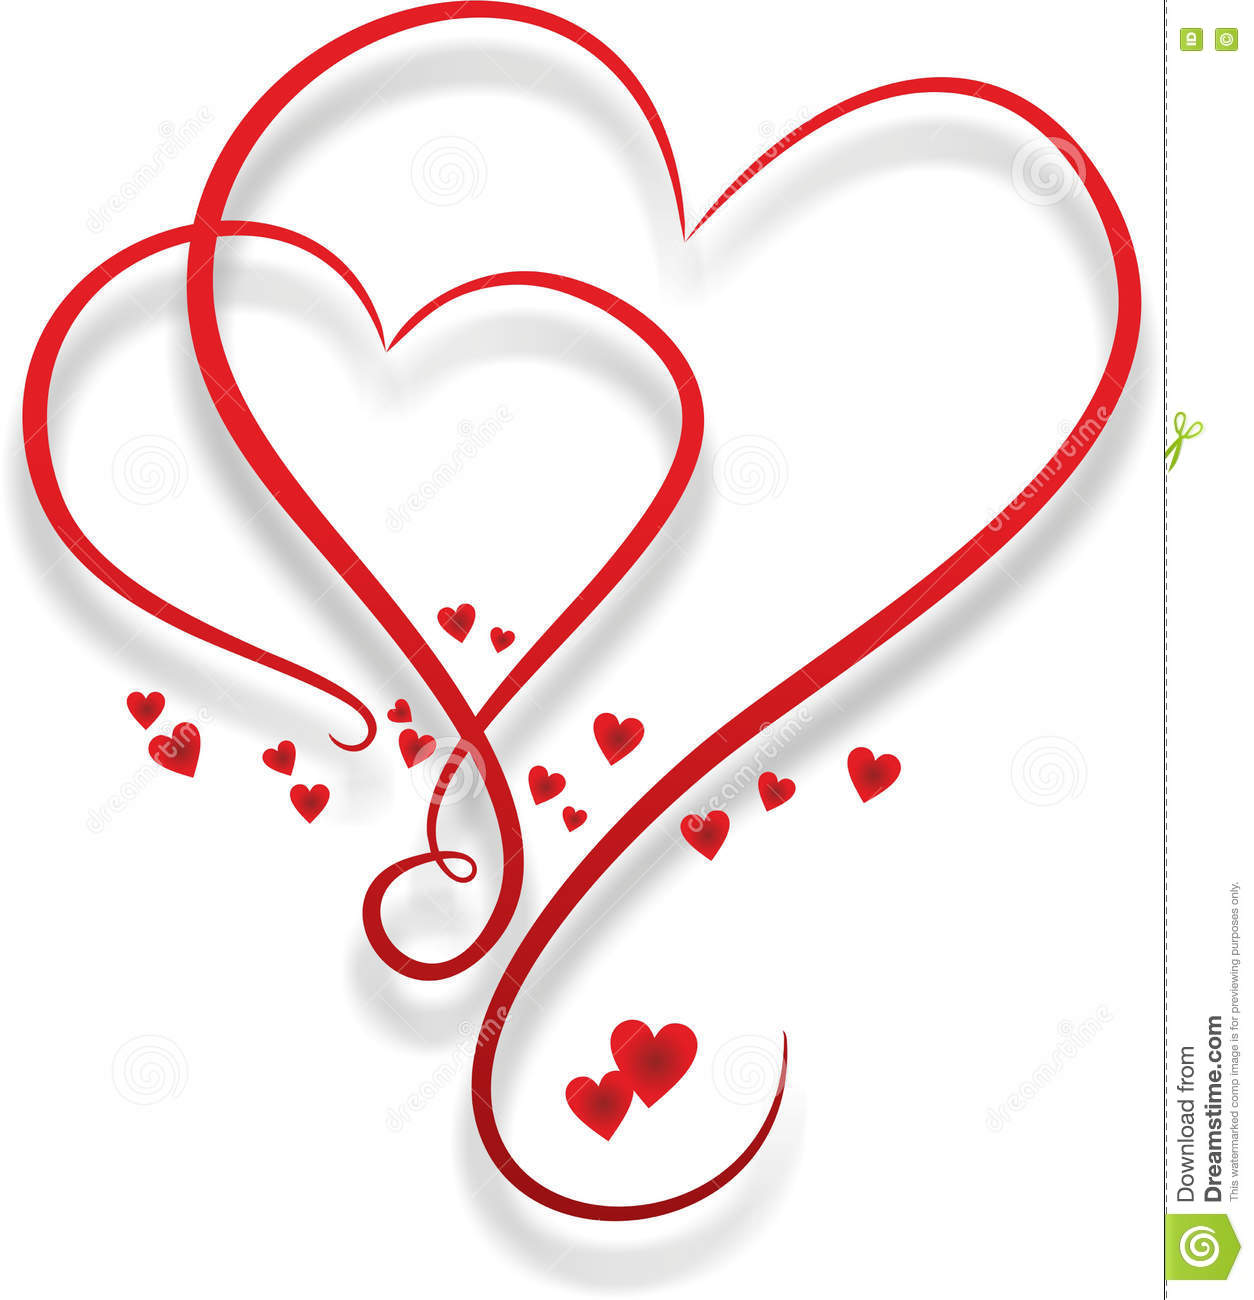 Two entwined hearts stock illustration. Image of metaphor ...